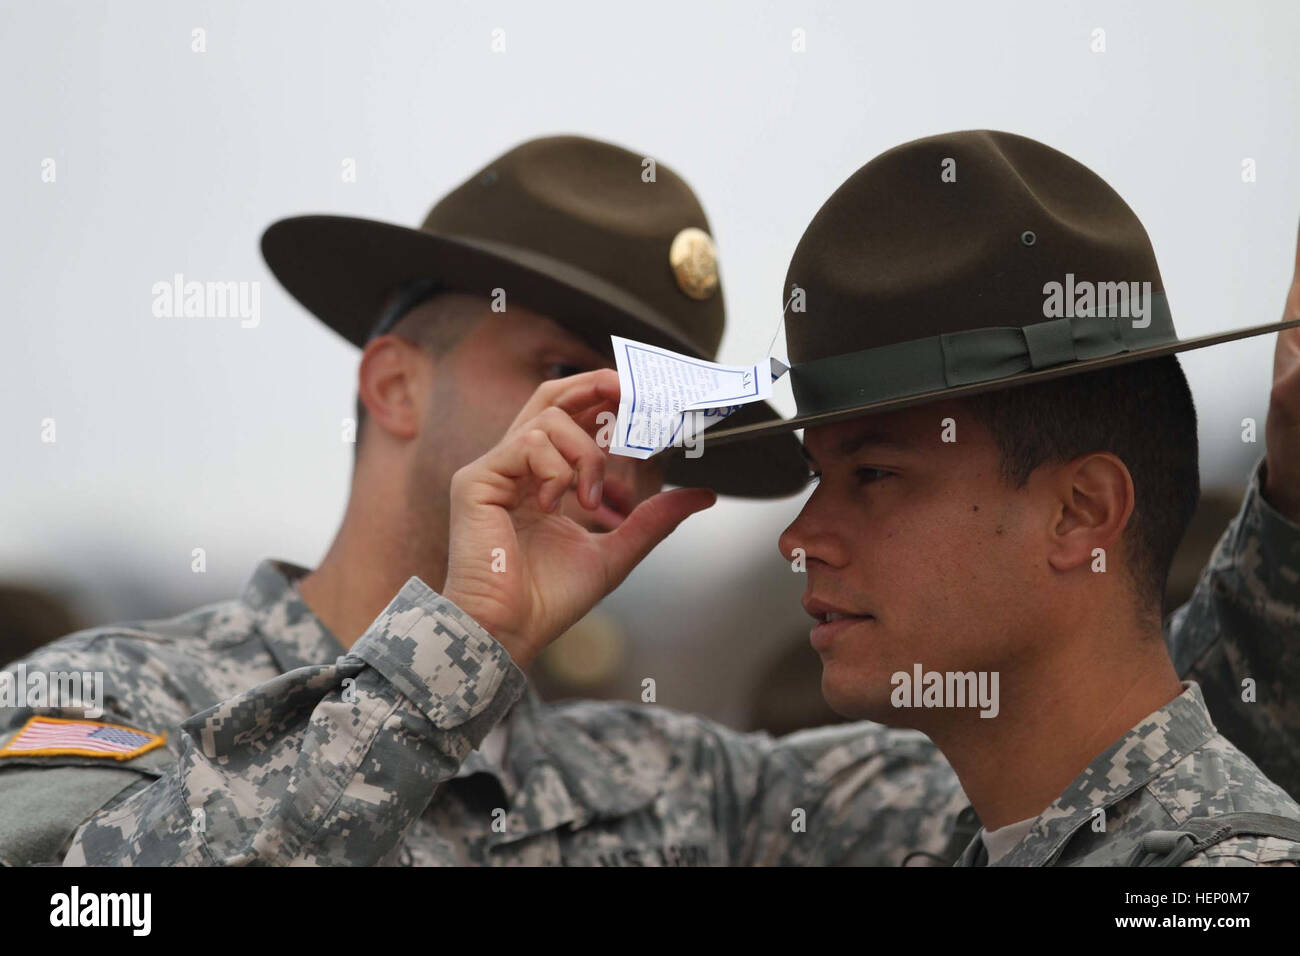 Army Drill Sergeant Stock Photos & Army Drill Sergeant Stock Images - Alamy